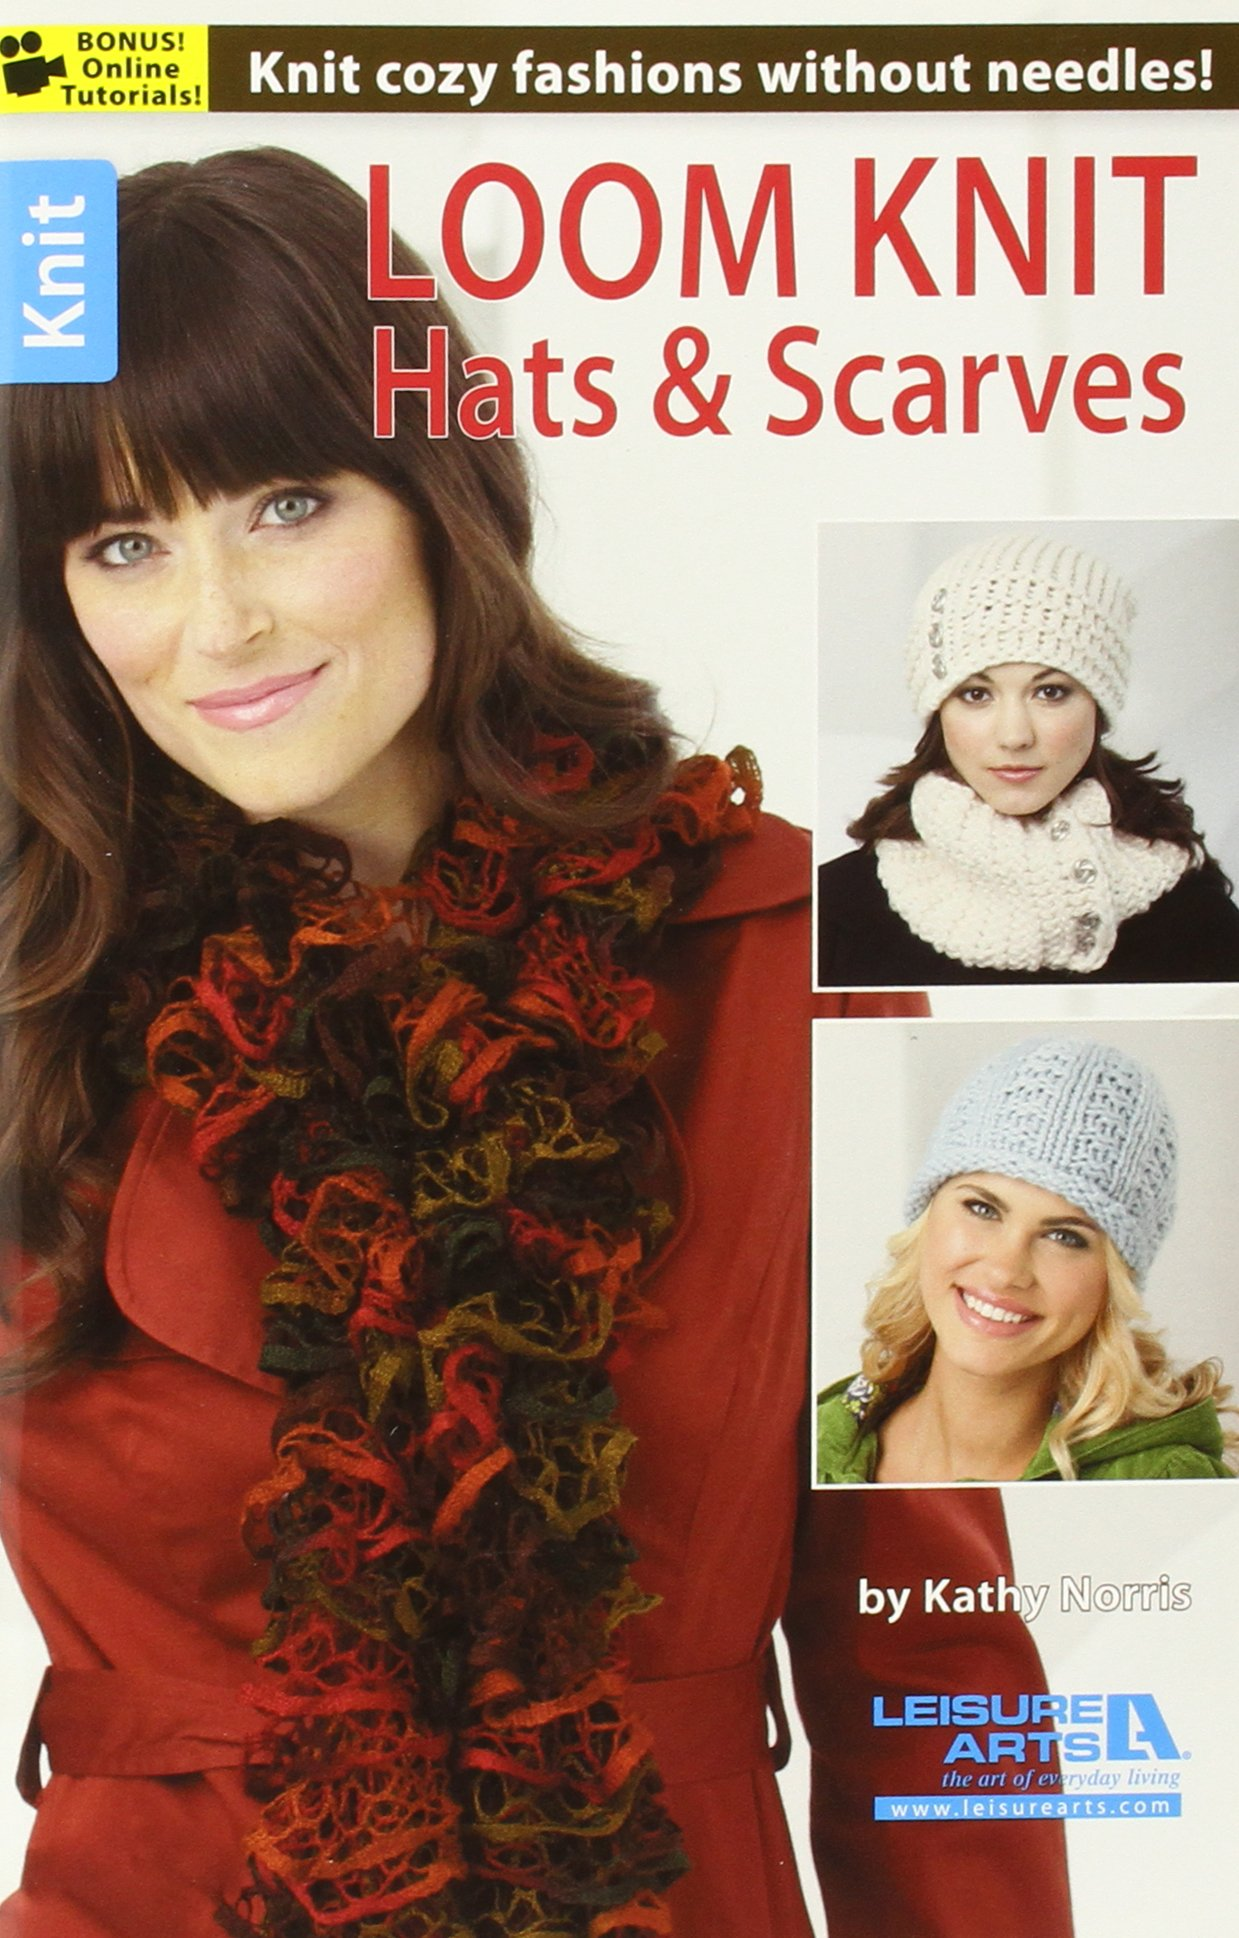 Knit Pattern Book KNITTING SCARVES On CIRCLE LOOMS 12 Designs